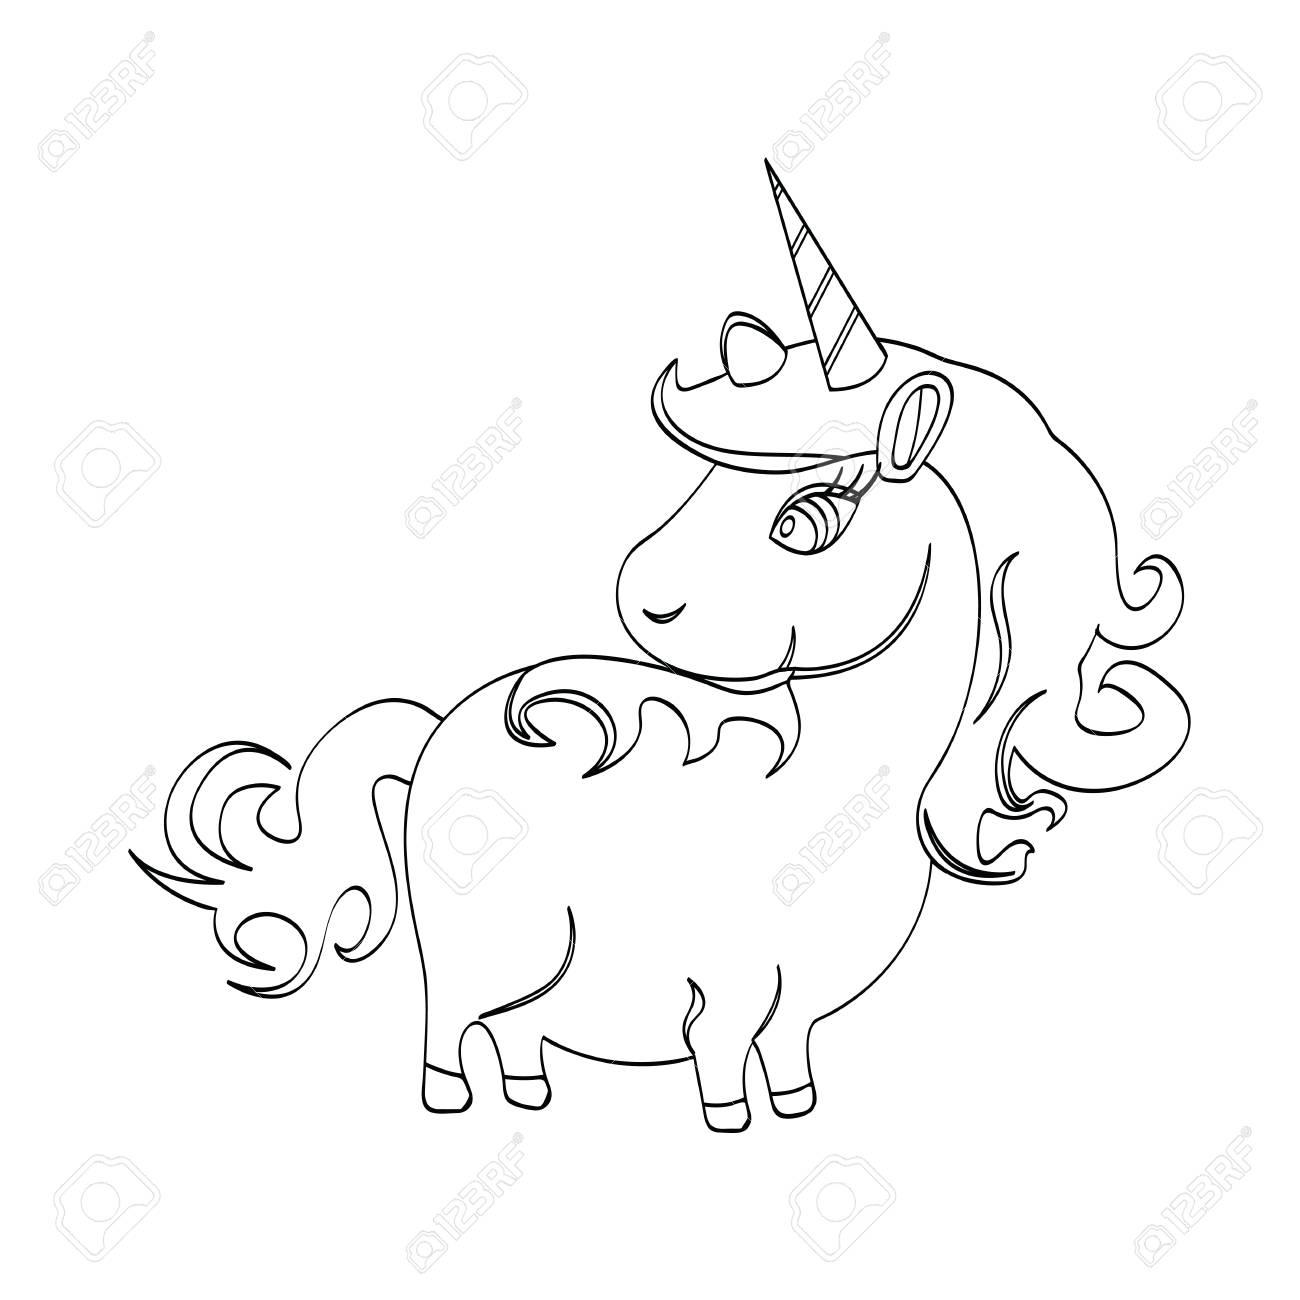 Illustration of unicorn cartoon animal for kids drawing or painting stock vector 96524960